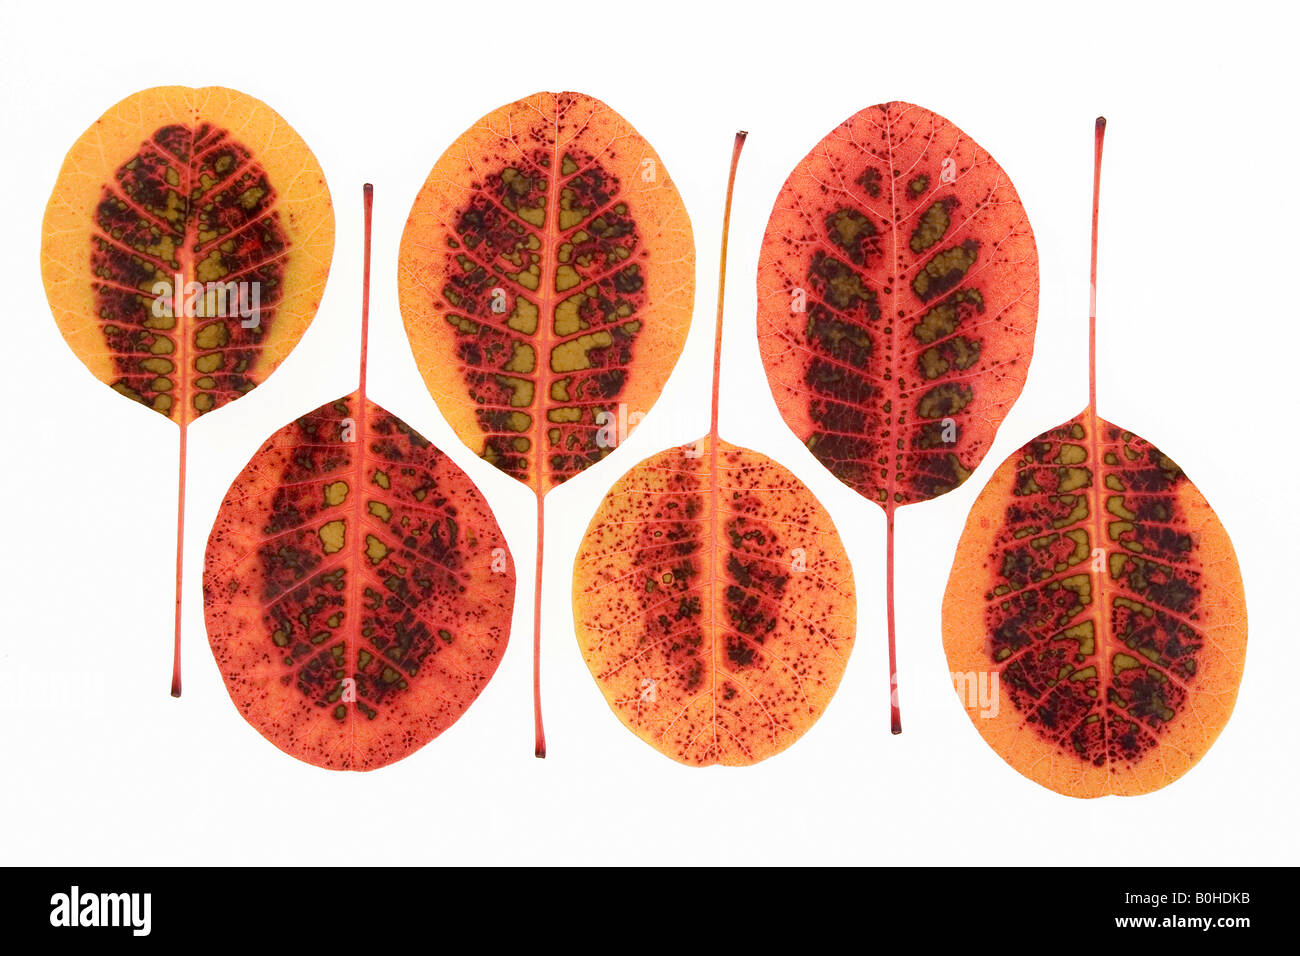 Eurasian Smoke Tree (Cotinus coggygria, Rhus cotinus), autumn coloured leaves - Stock Image